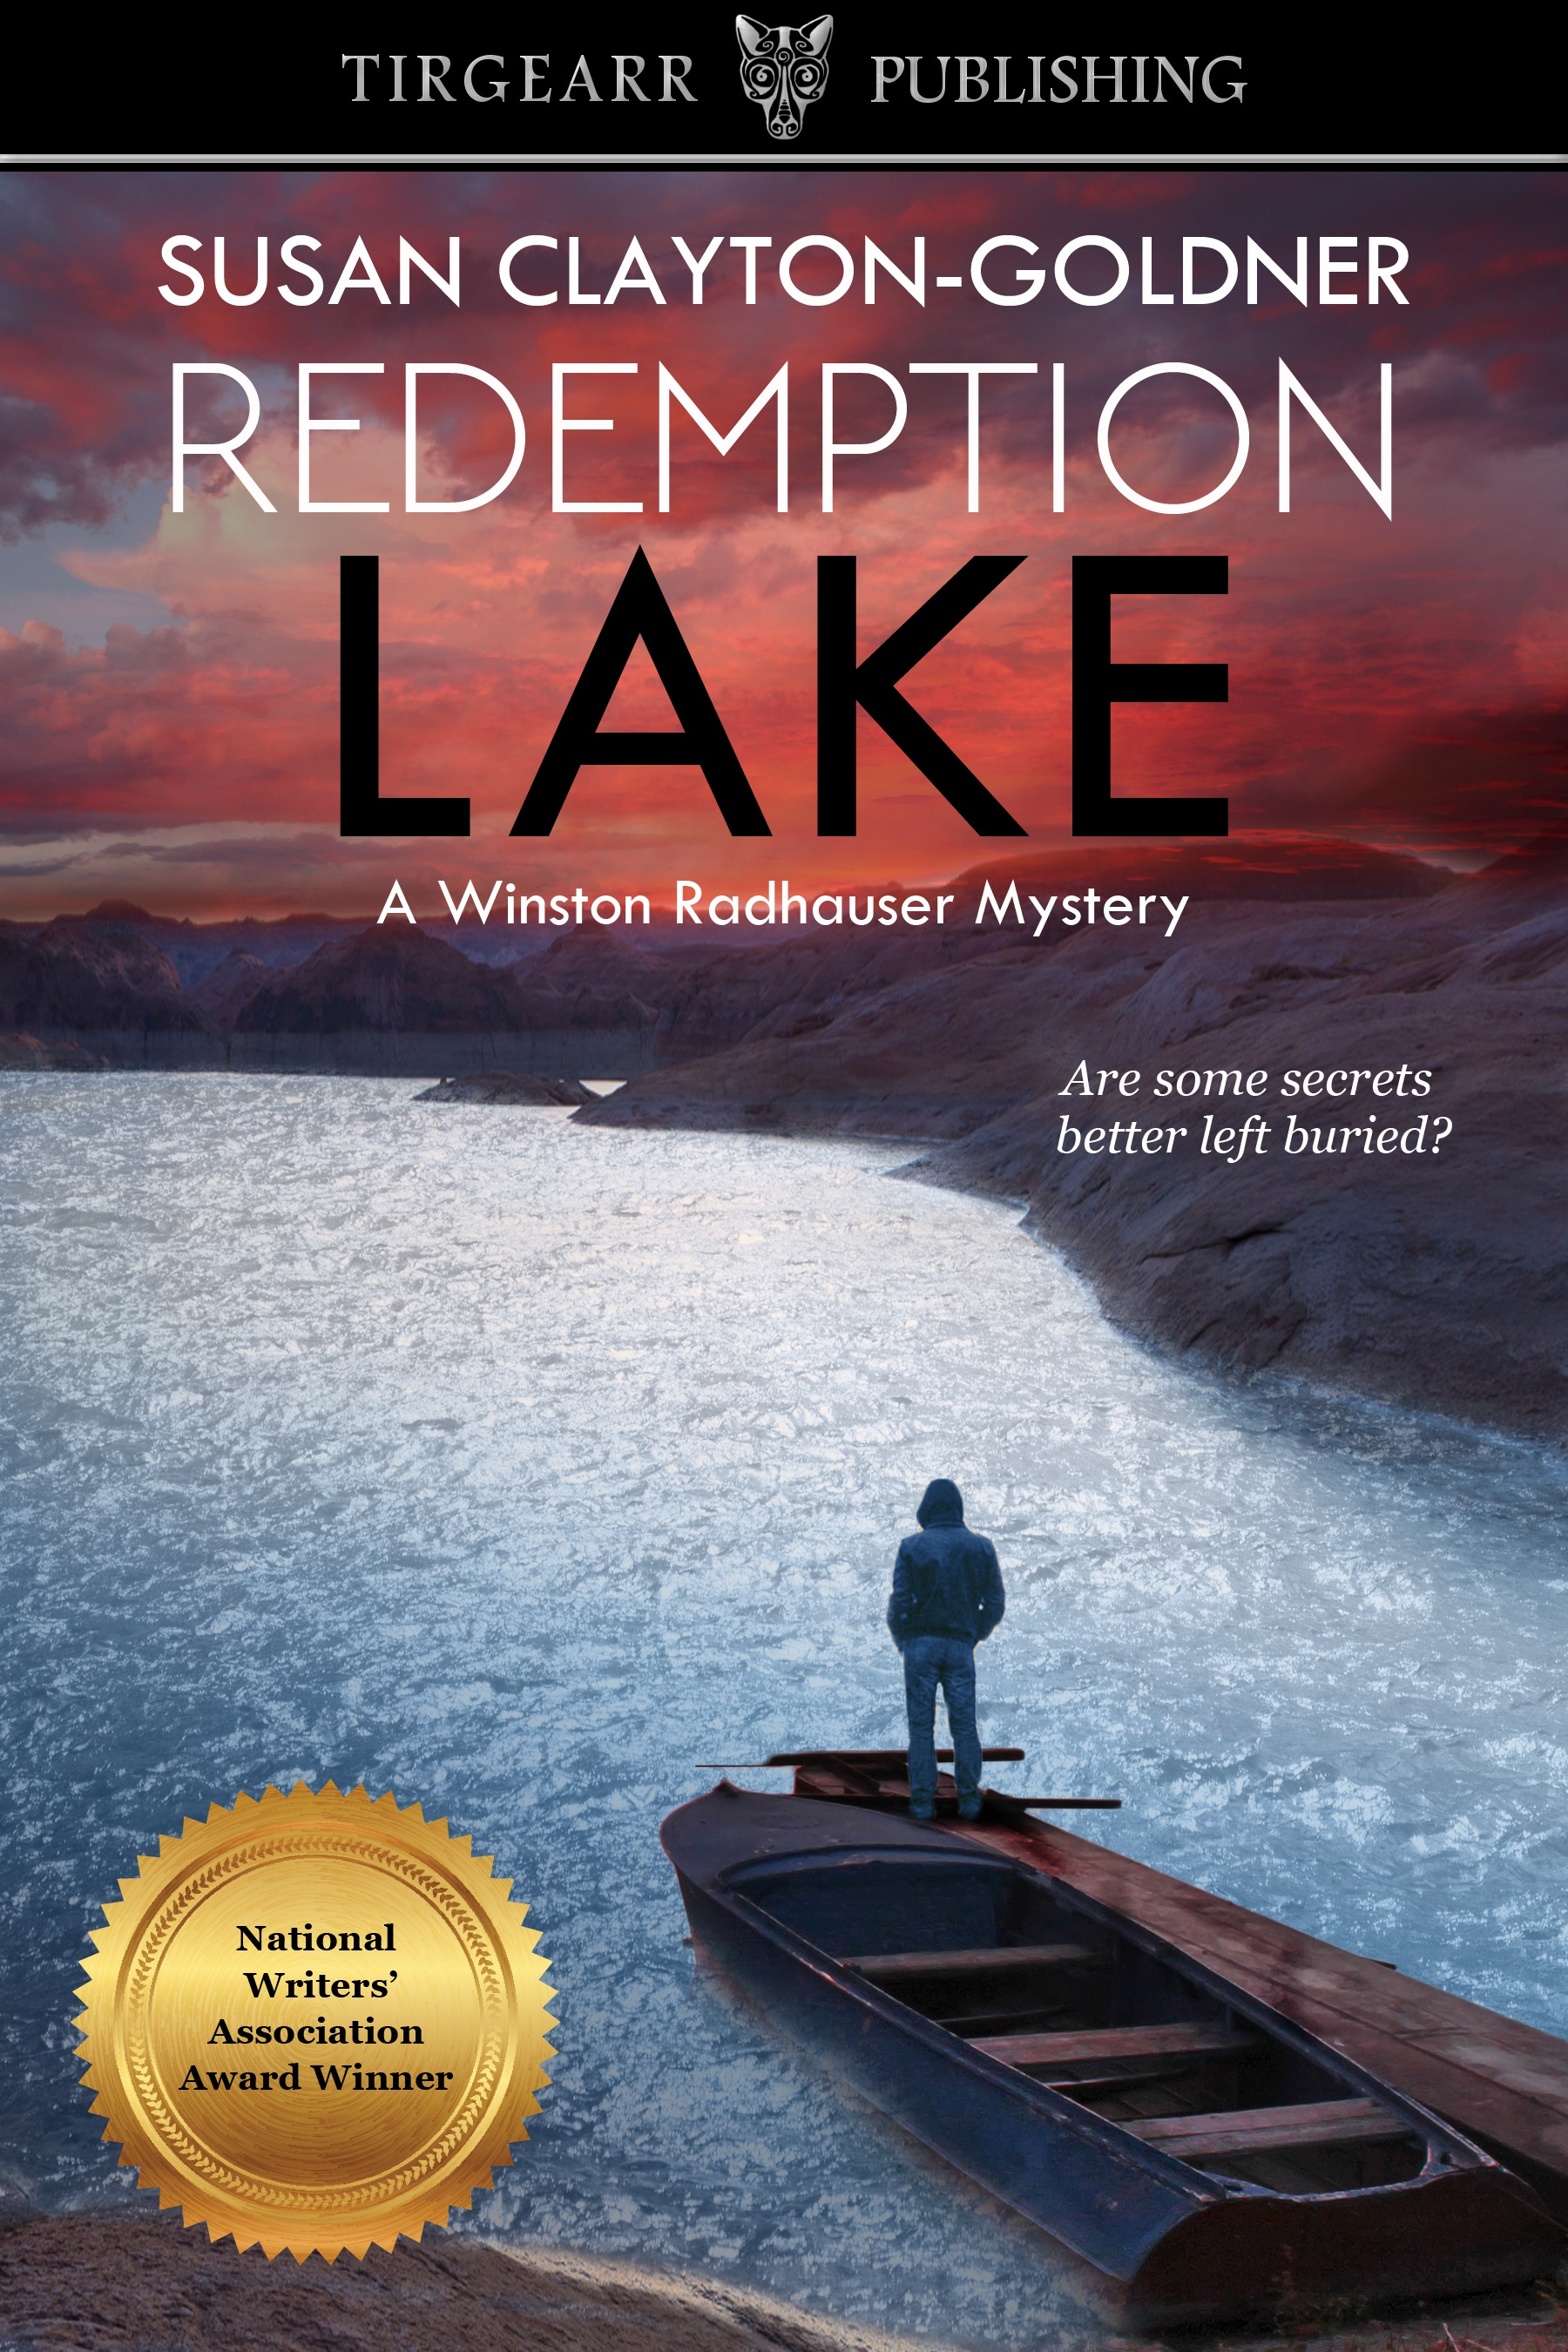 Redemption Lake (sst-cccxcix)